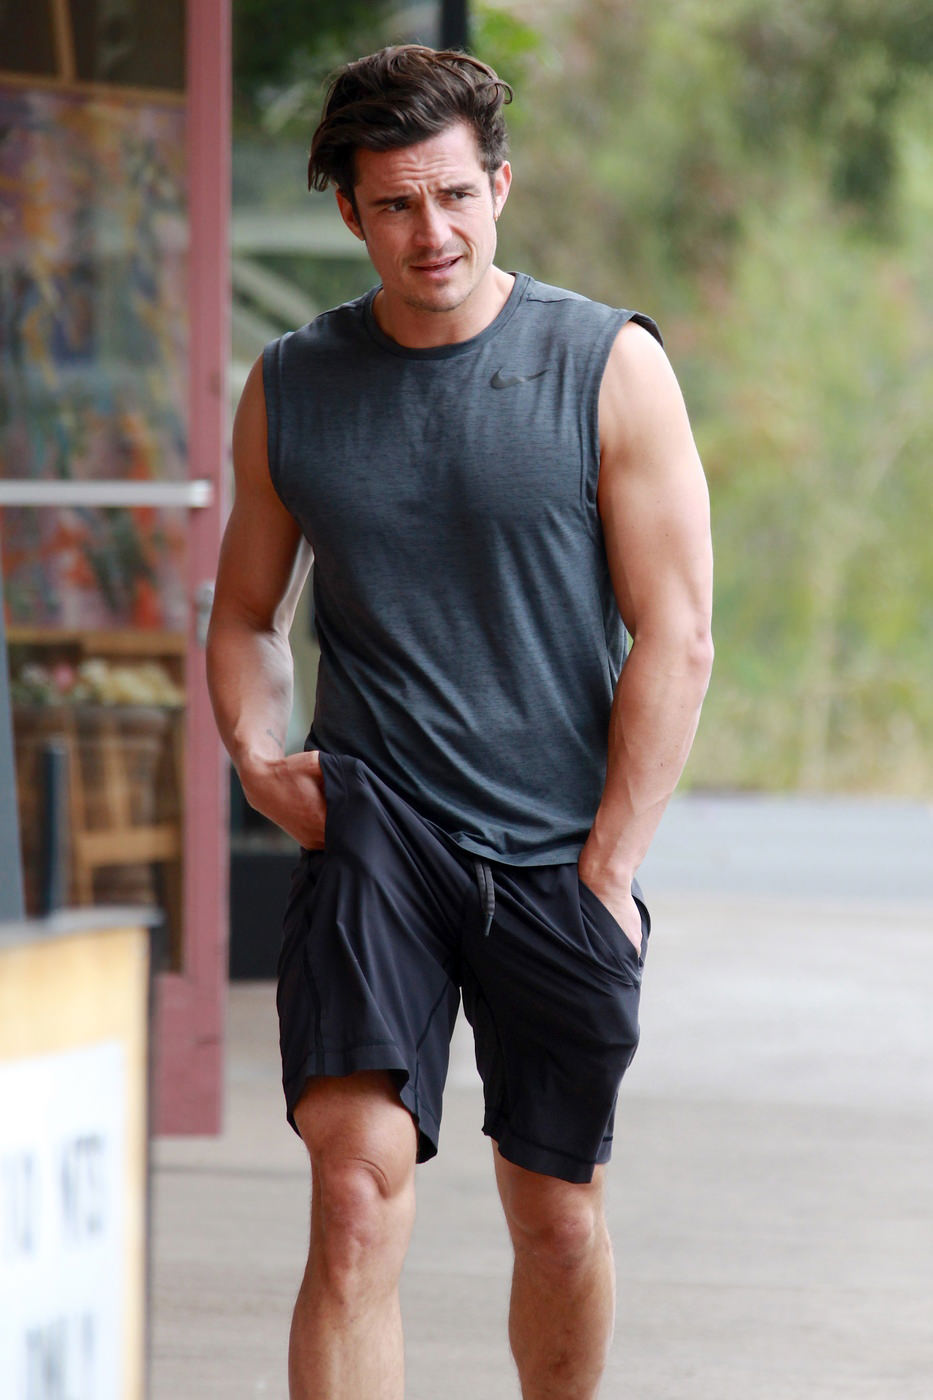 Orlando Bloom Does Some Heavy Lifting At The Gym Tom